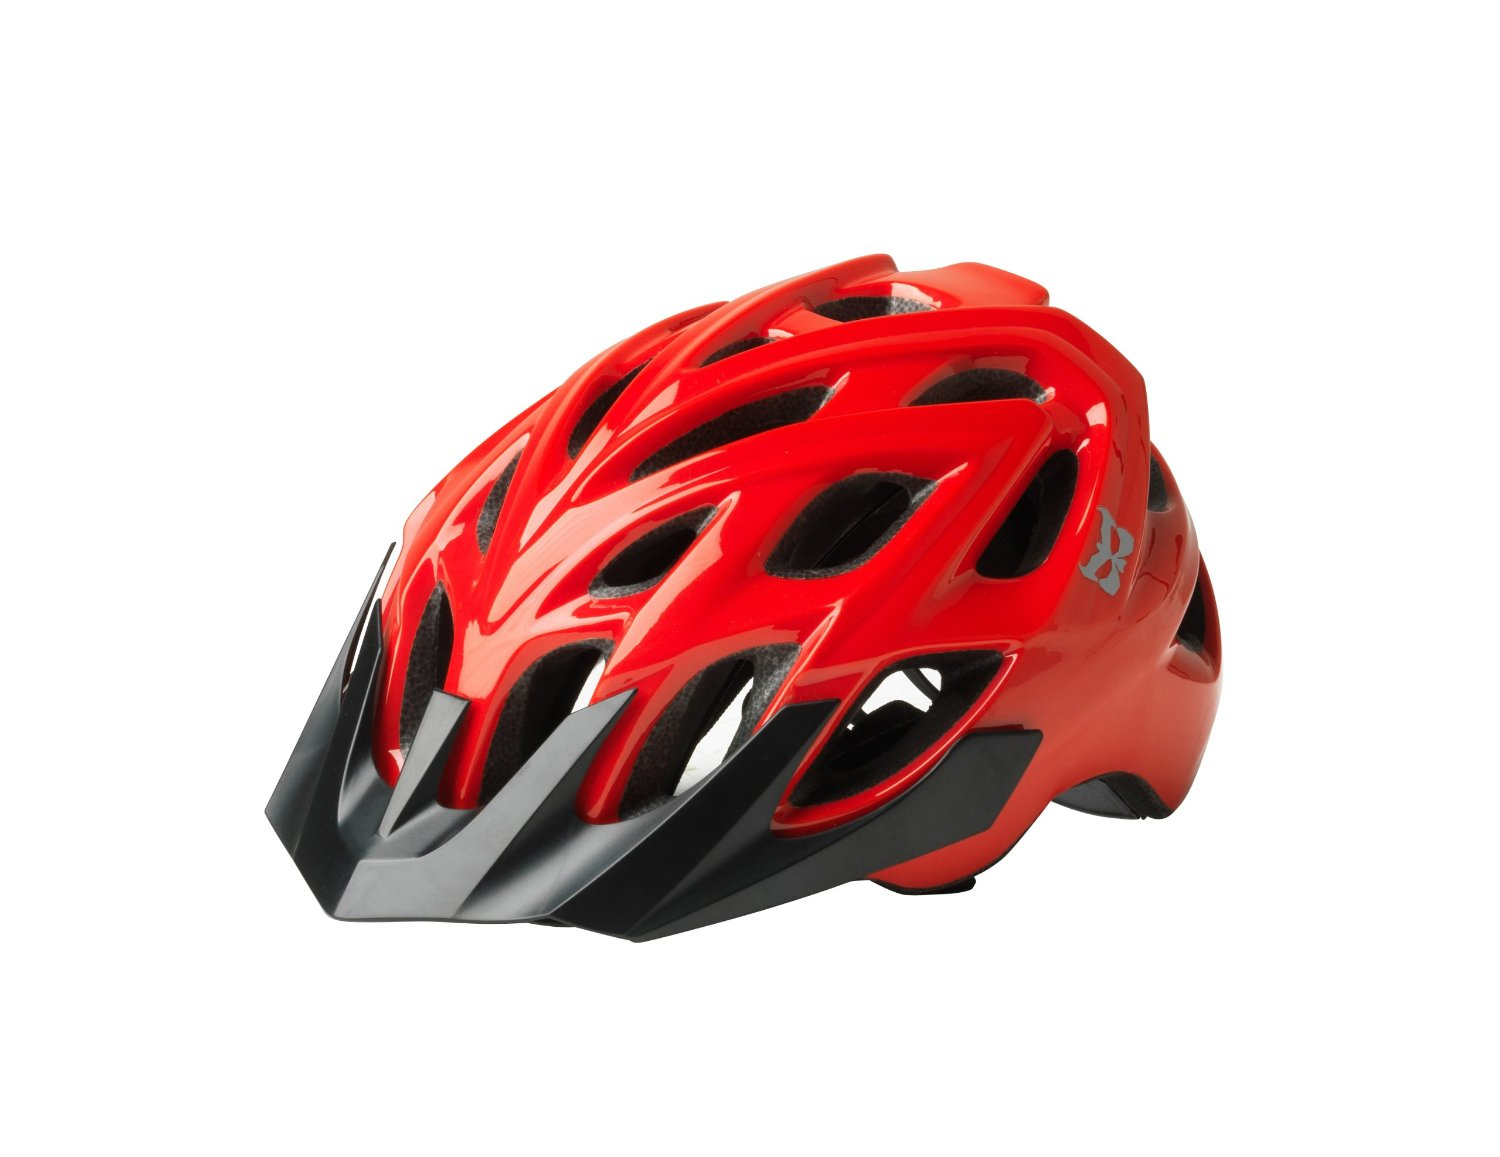 Red Kali Protectives Bicycle Helmets